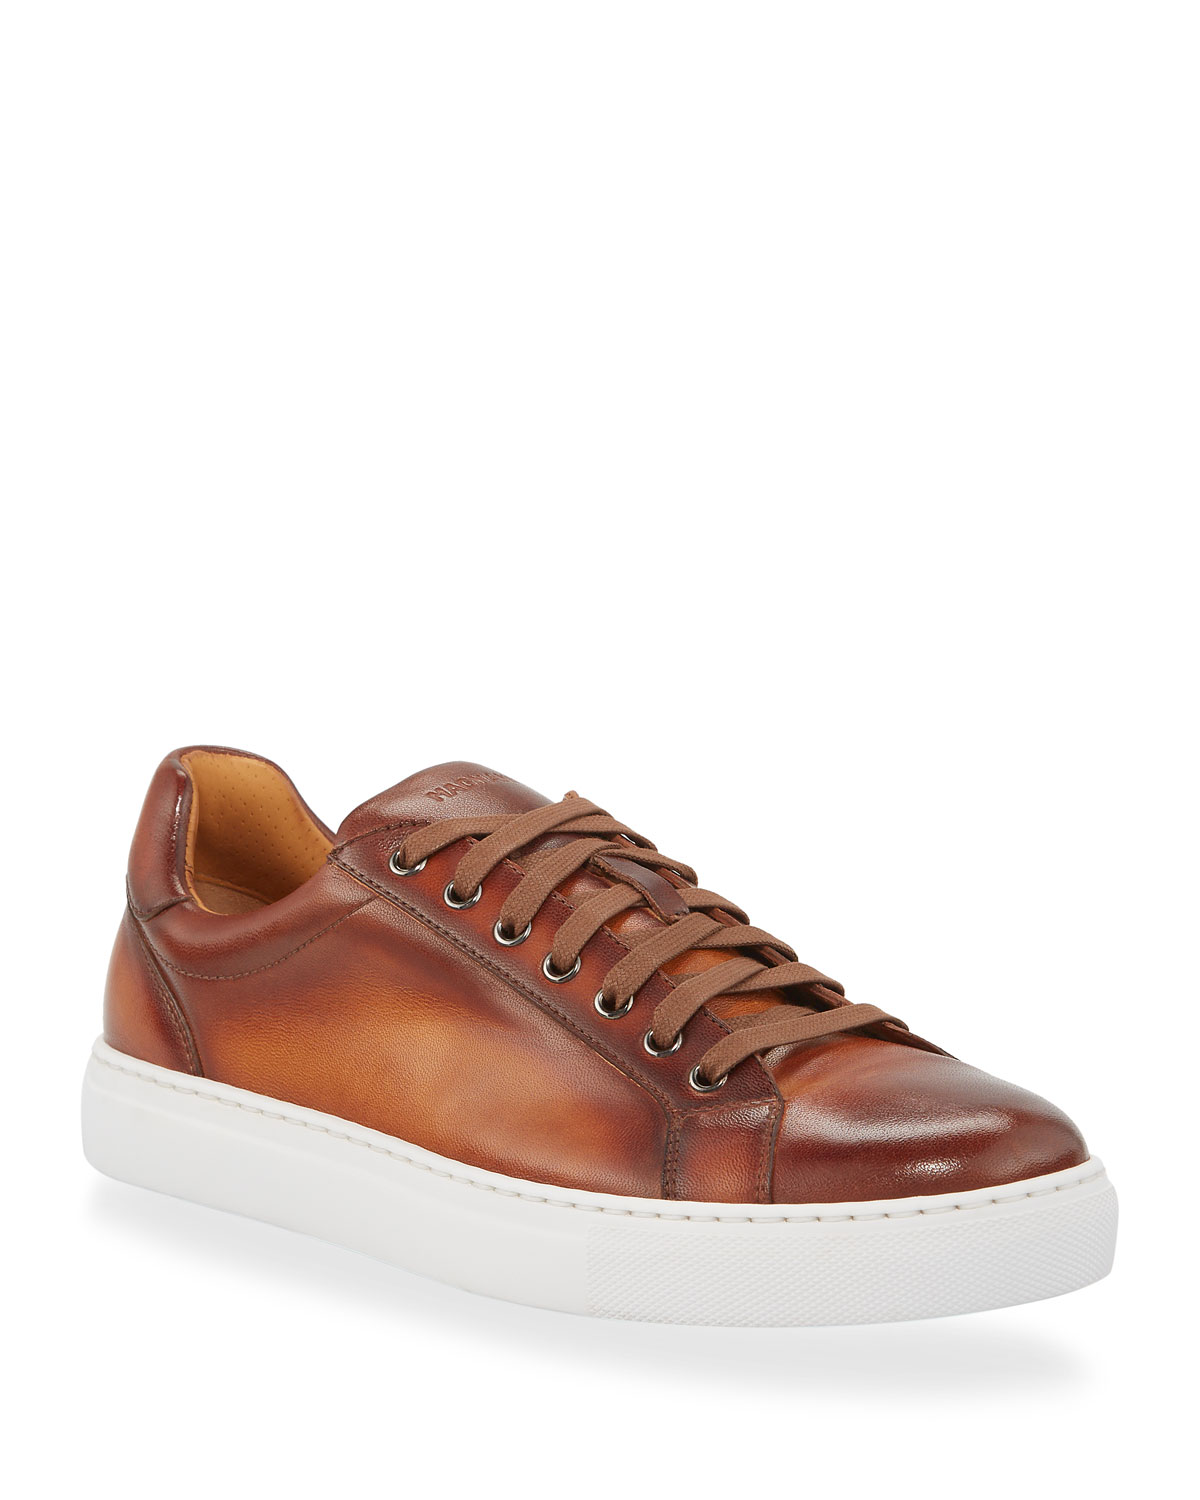 Magnanni Sneakers MEN'S NAPA LEATHER LOW-TOP SNEAKERS